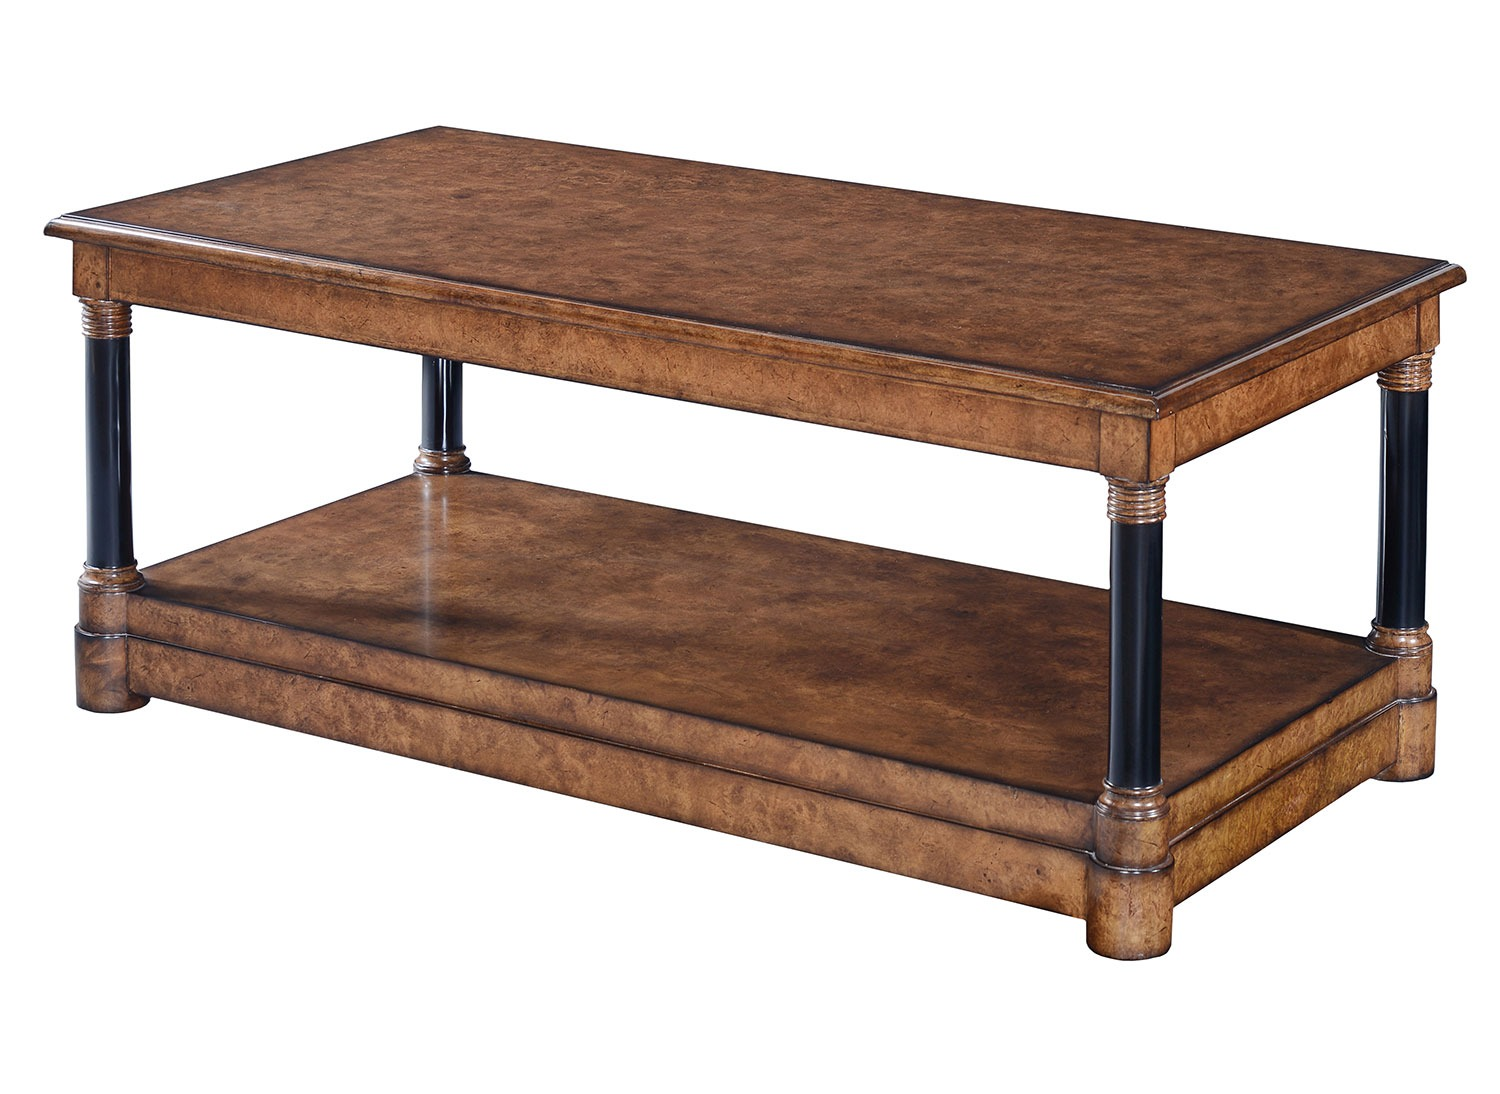 Empire style coffee table - Burr oak with ebonised legs